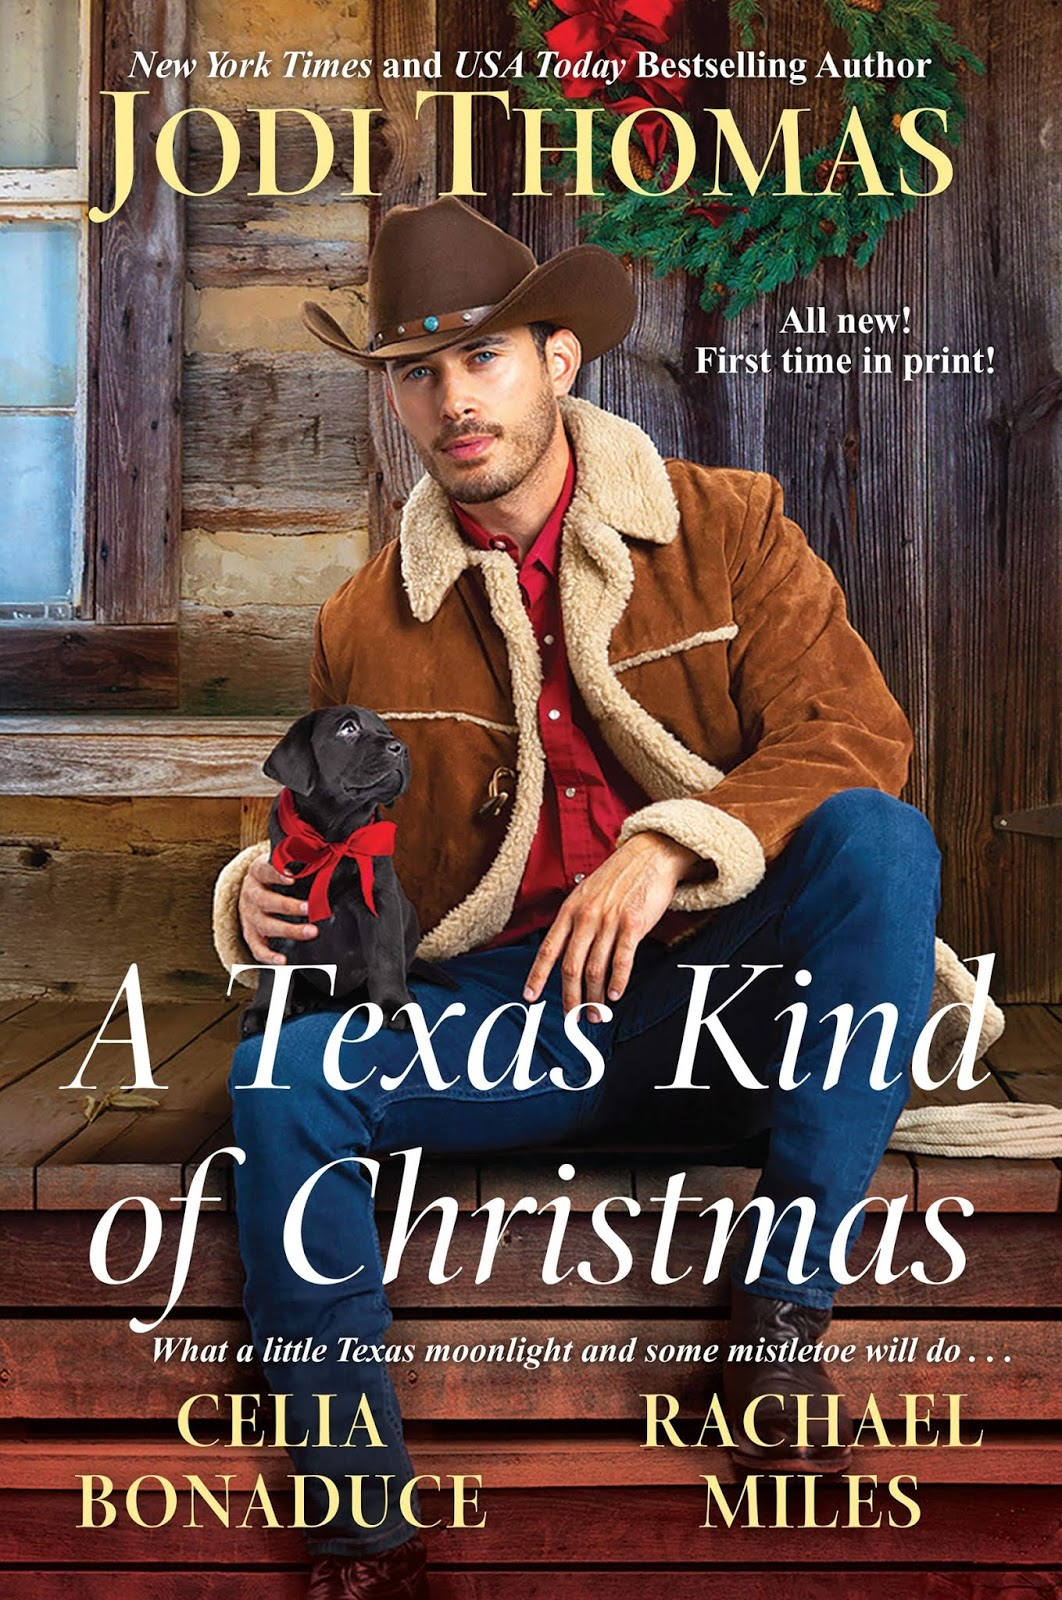 A Texas Kind of Christmas book cover